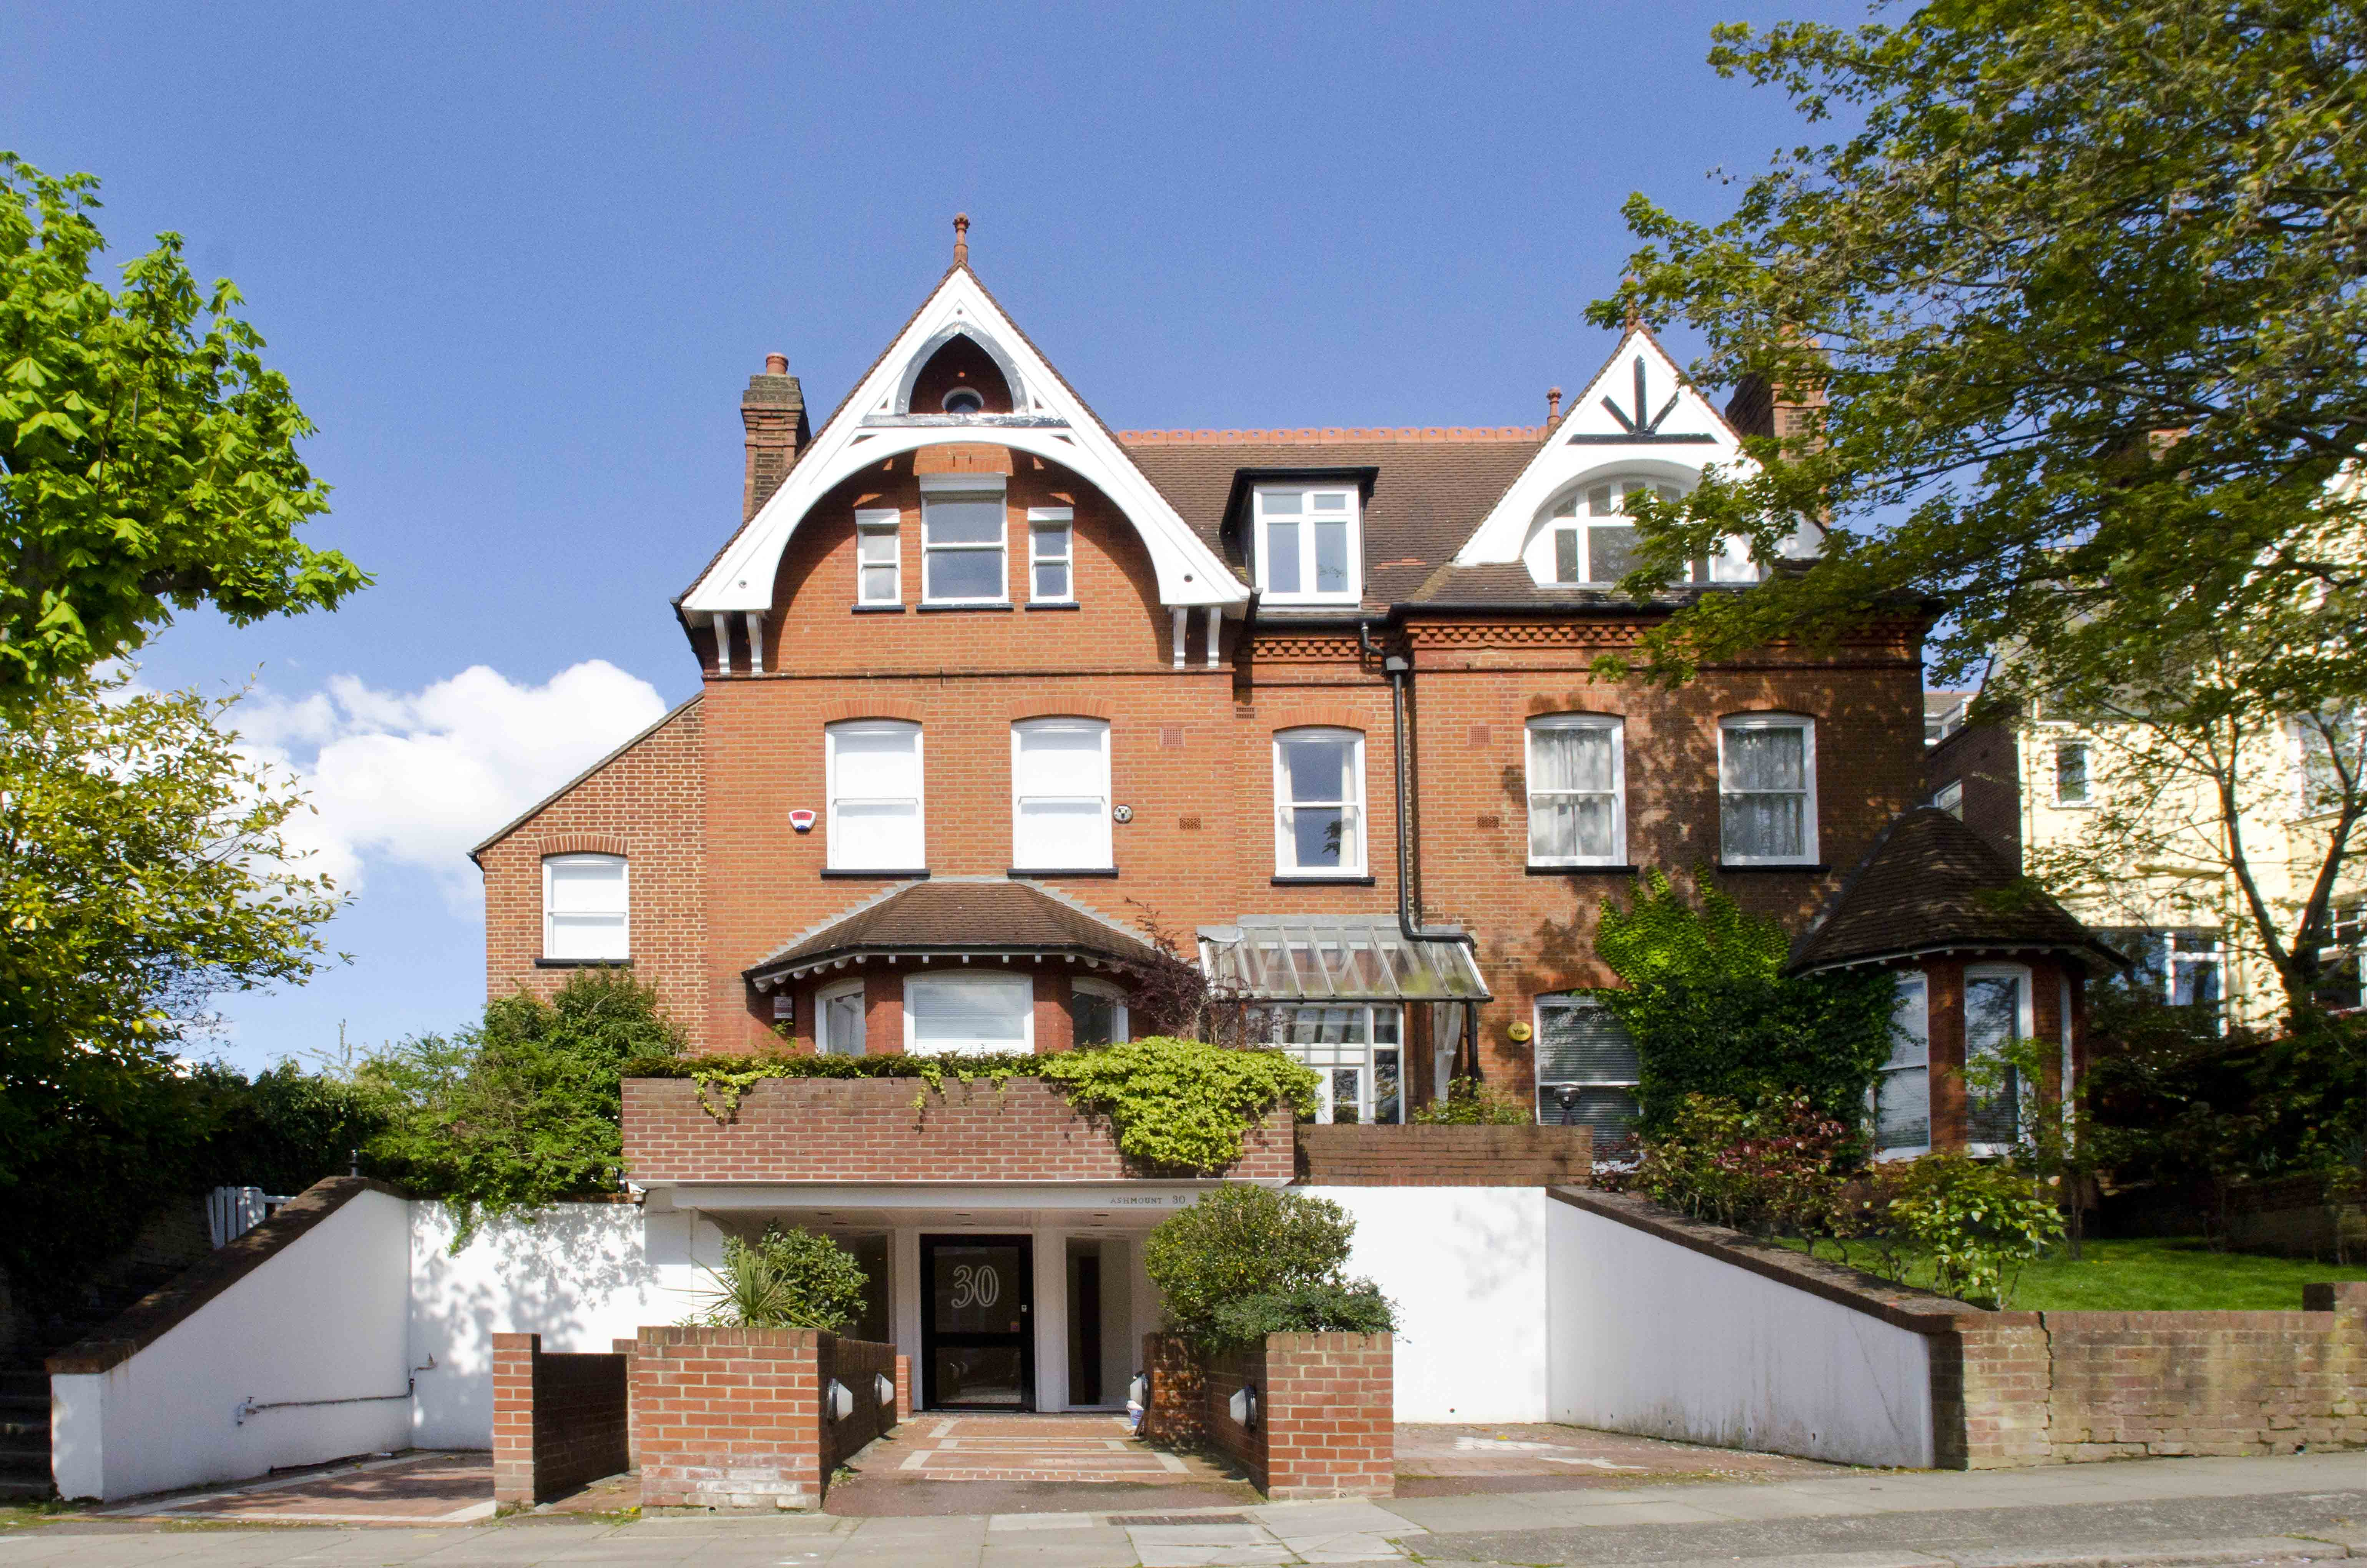 Redington Road, Hampstead, London, NW3